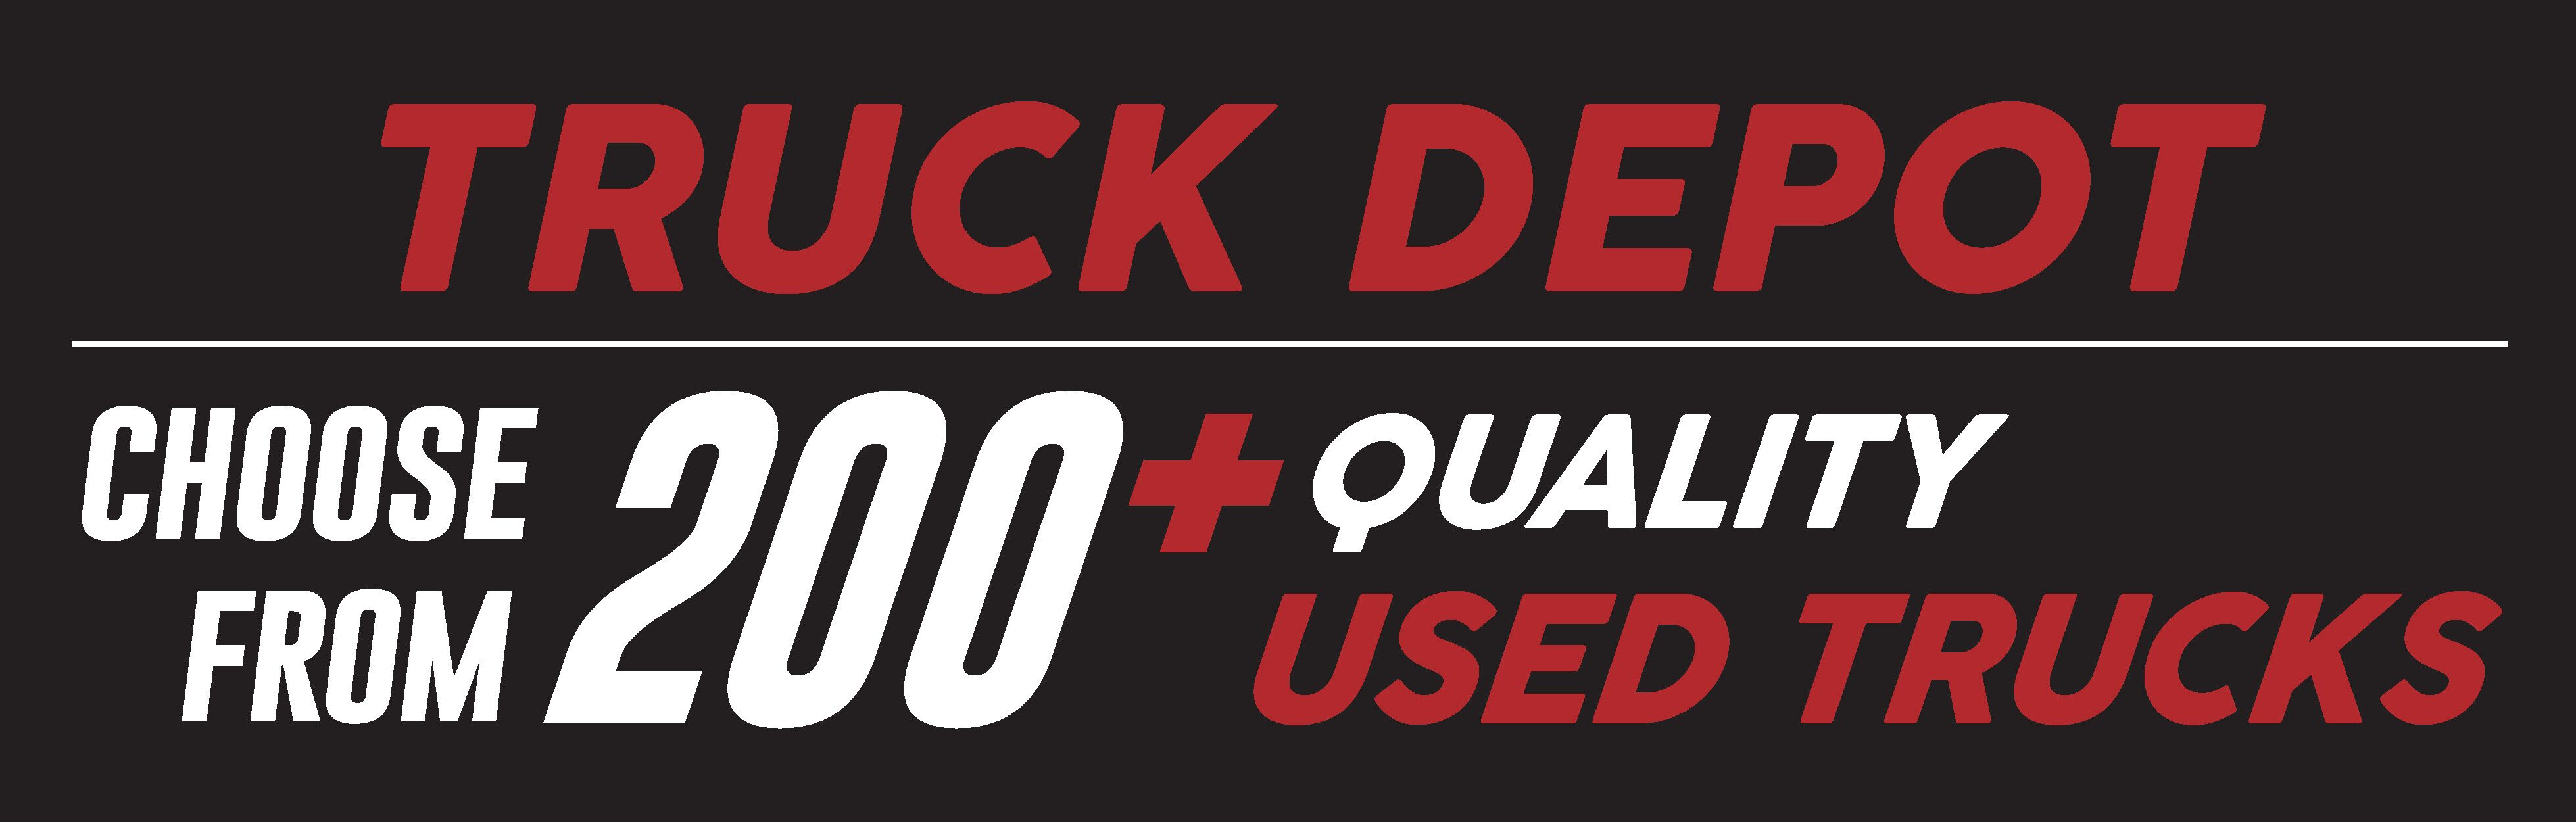 Truck Depot page banner